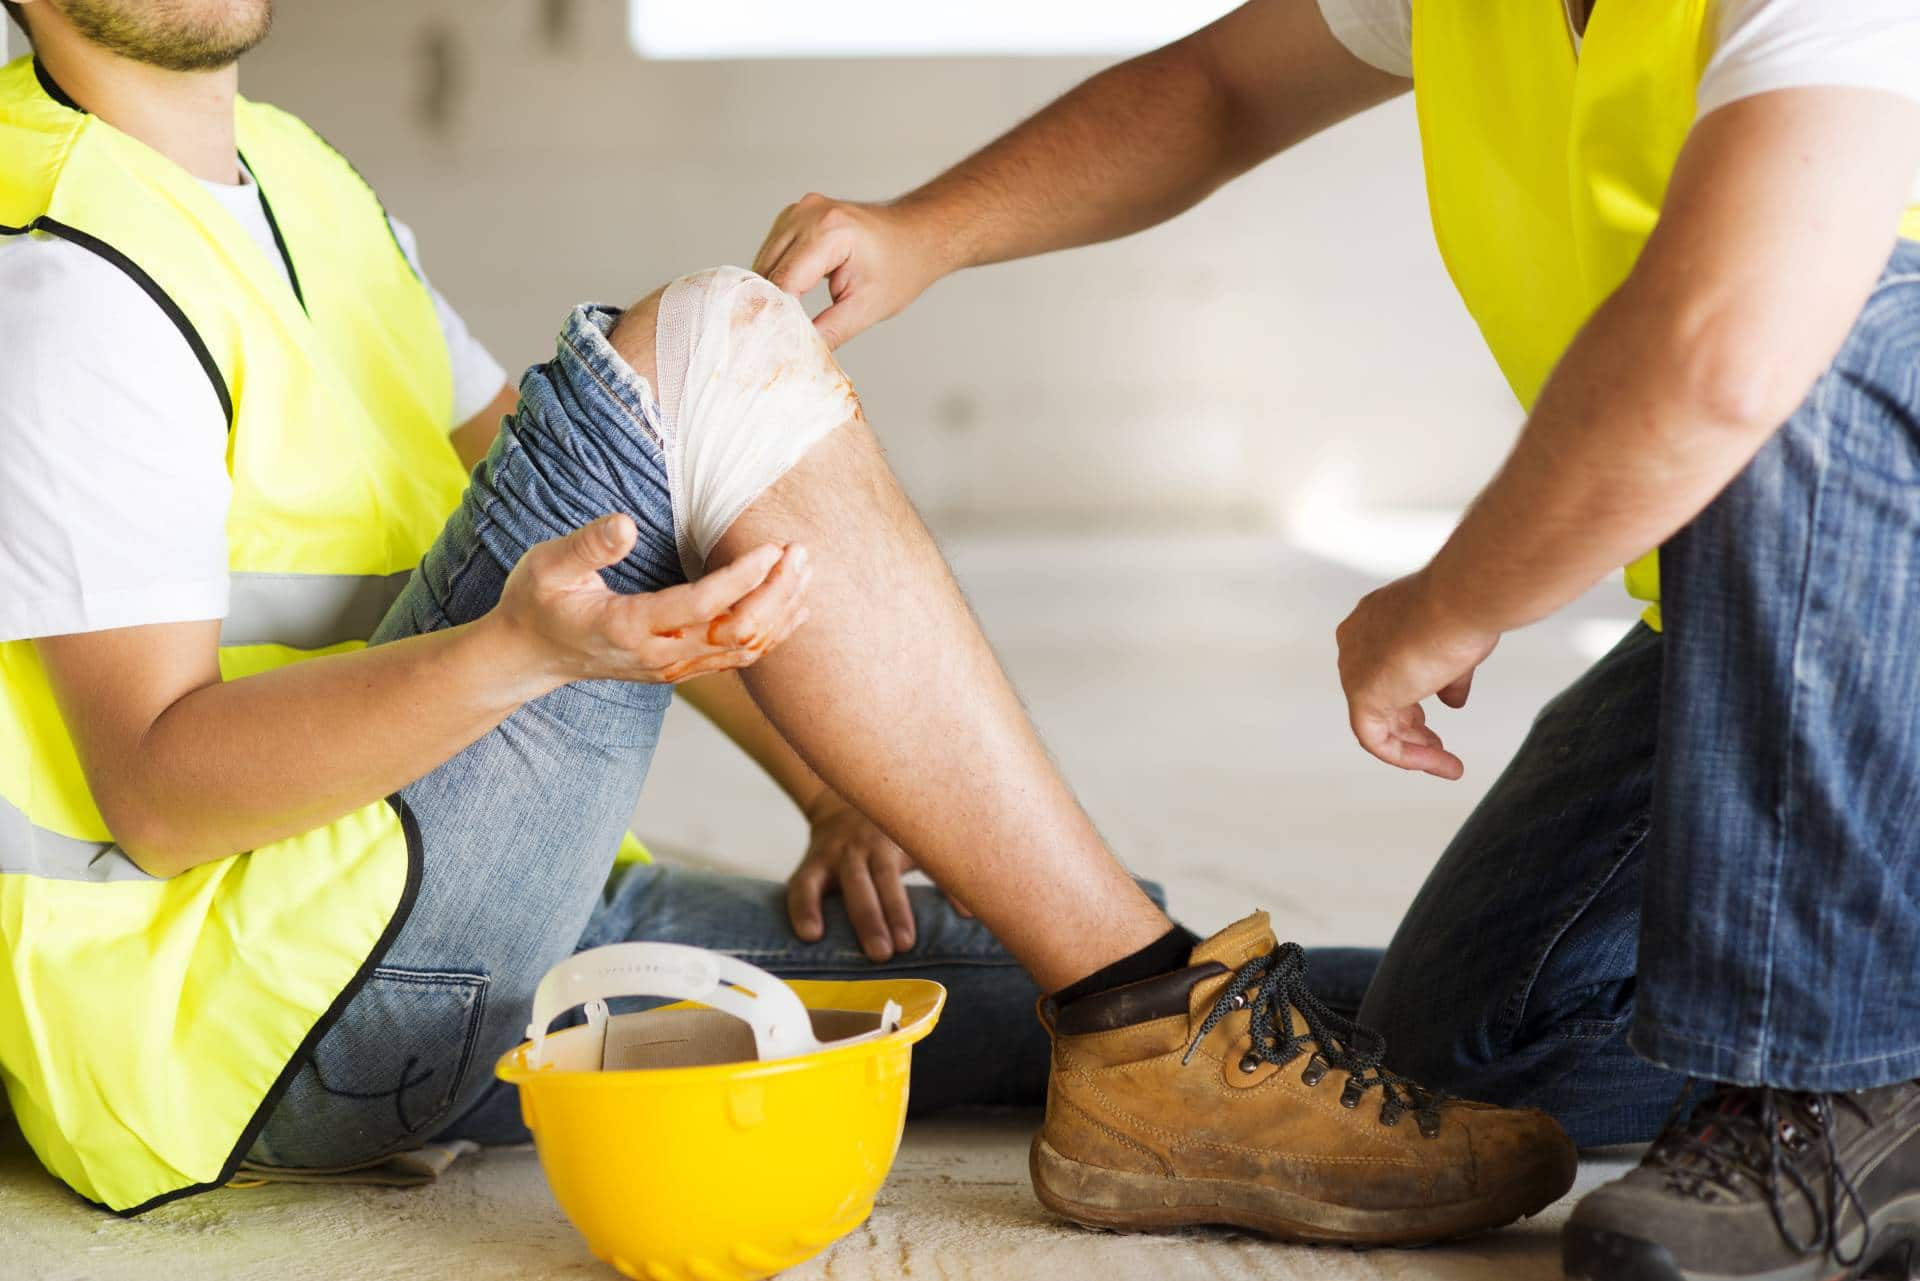 Injured on the job? Schedule a free consultation with our personal injury lawyers at the Angell Law Firm in Peachtree Hills.